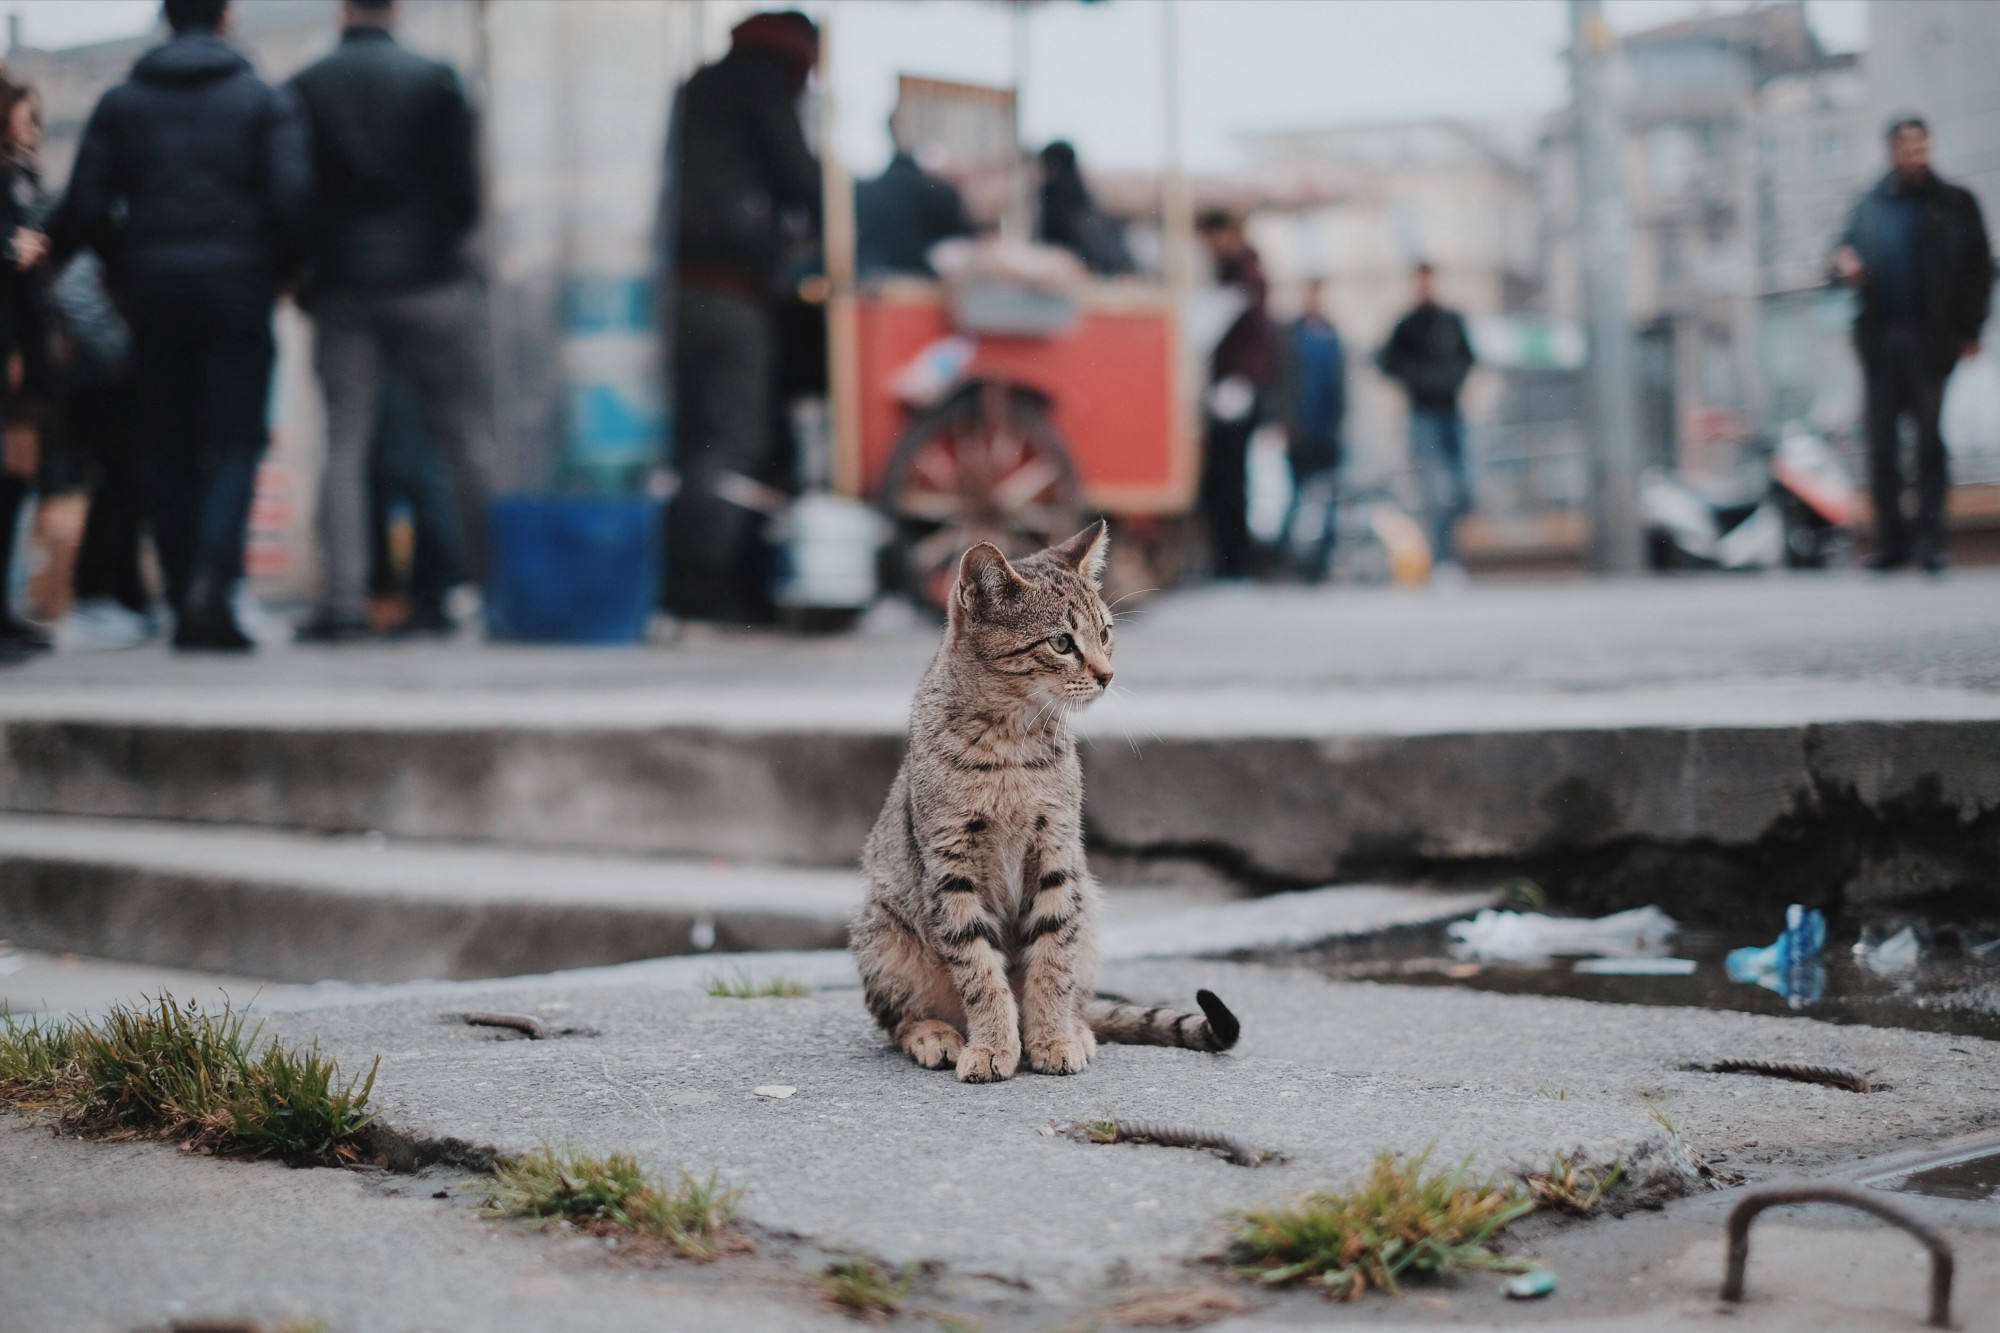 Cat on sidewalk with people behind him.